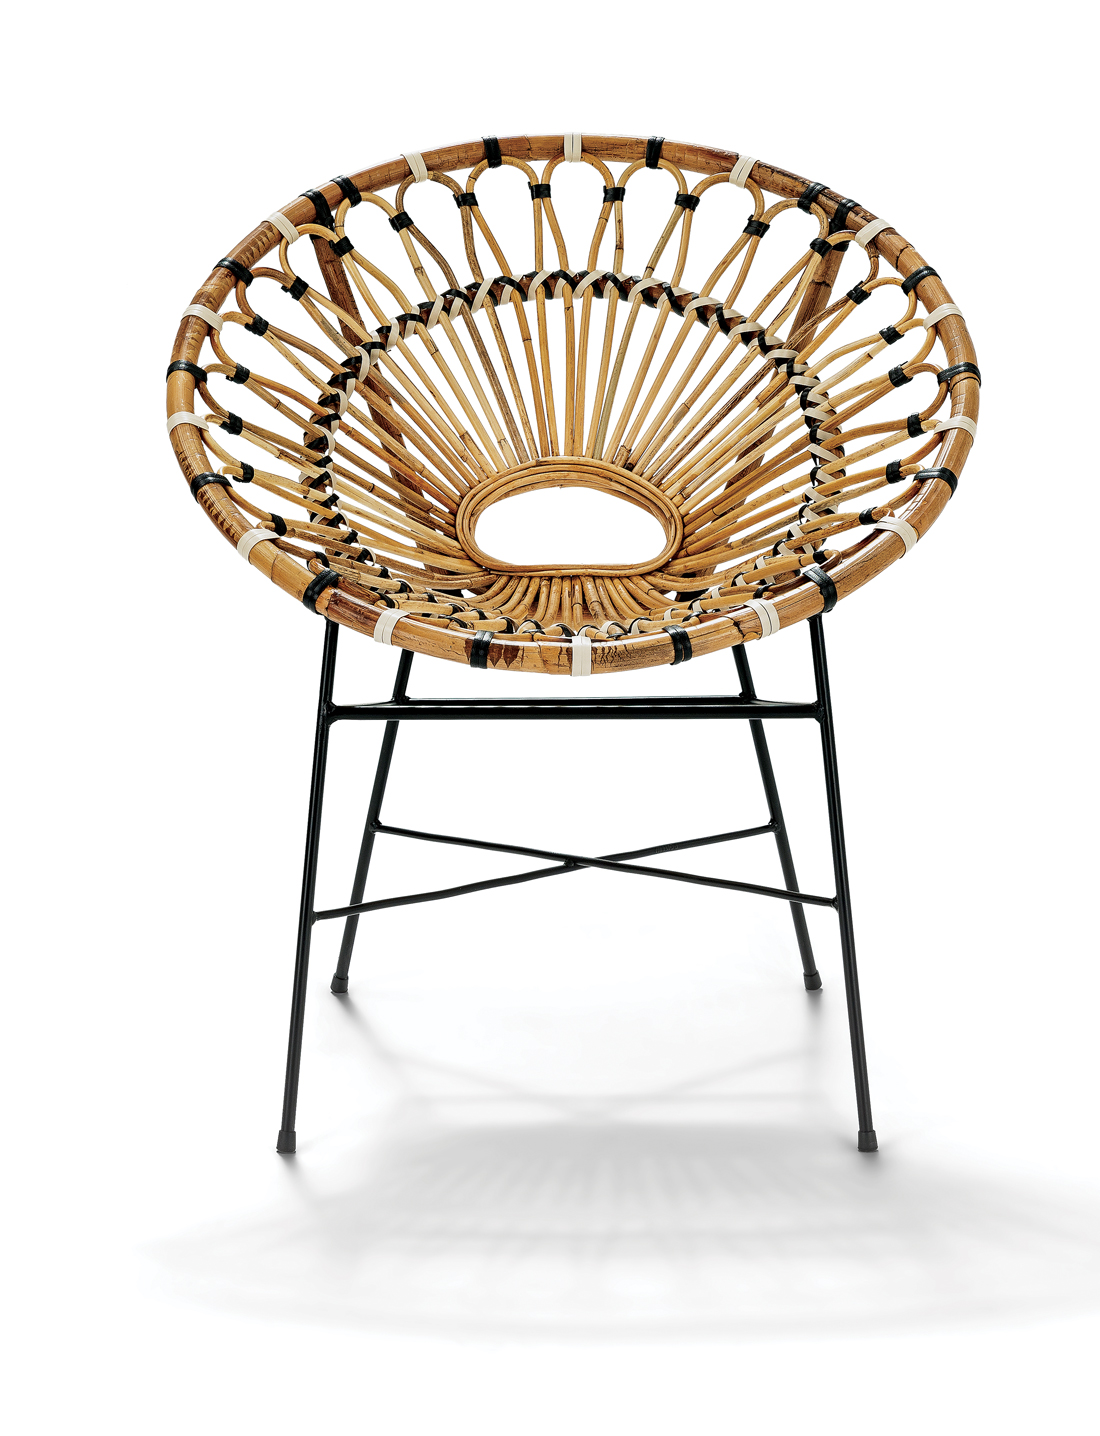 Rattan Chair on black metal legs with black and white accents.